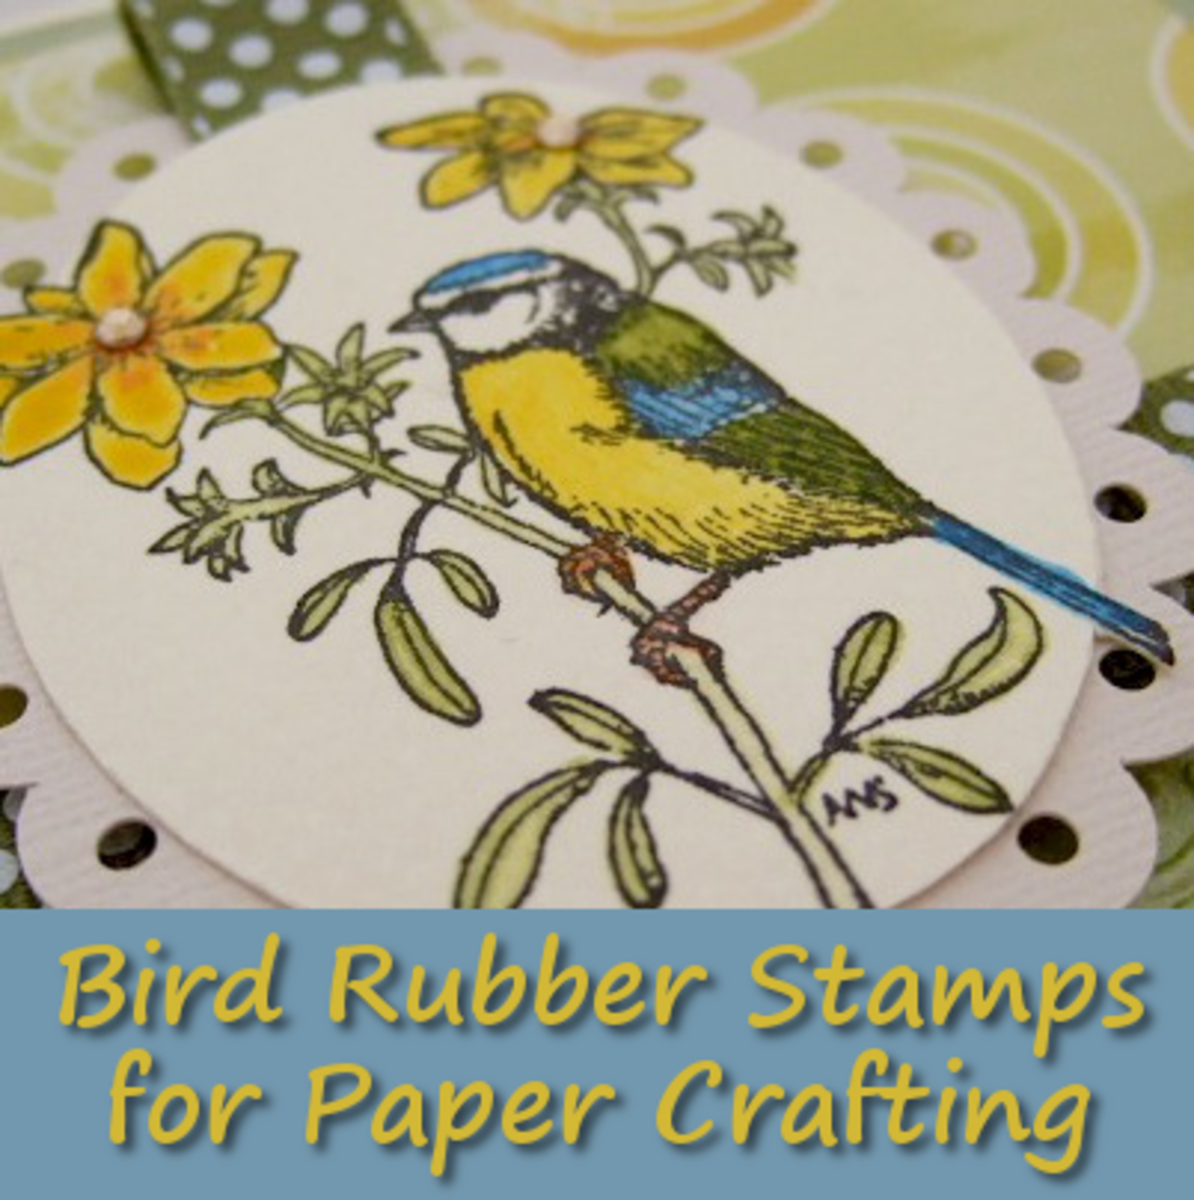 Using Bird Themed Rubber Stamps for Paper Crafting